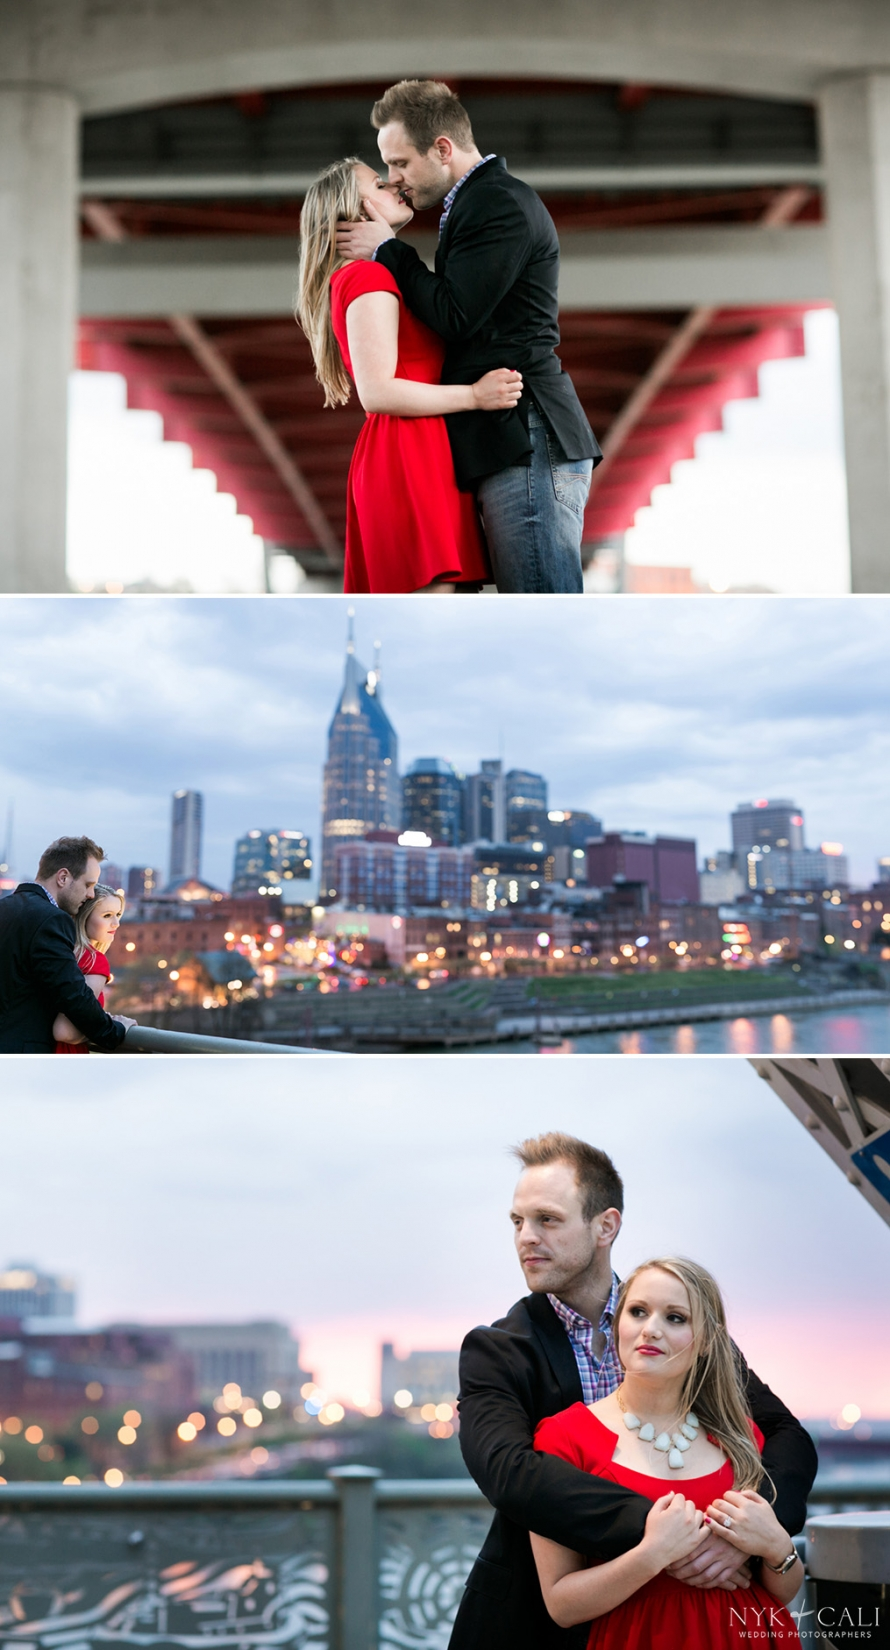 Downtown-Nashville-Engagement-Photographers-Nyk-Cali-03